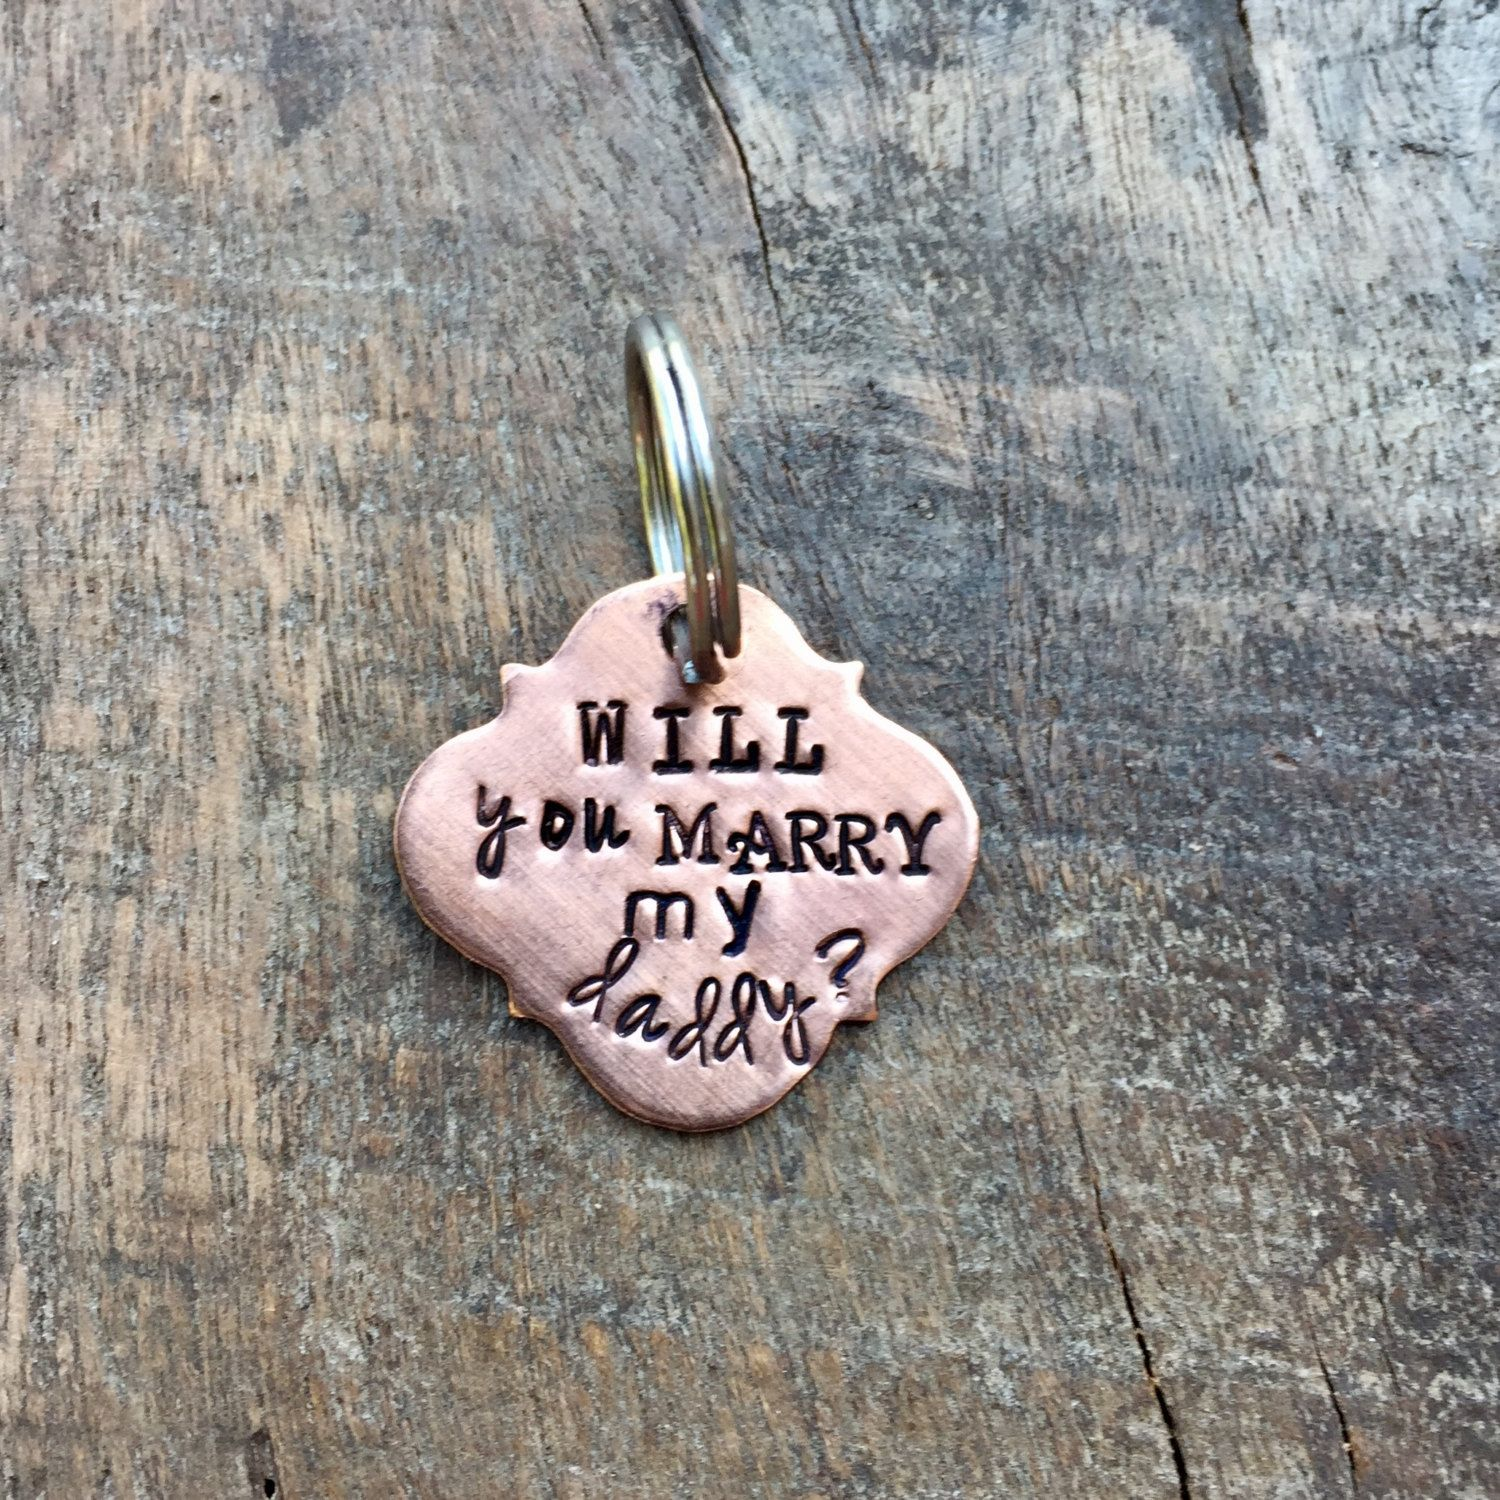 Puppy Proposal Hand Stamped Dog Tag Unique Puppy Pawposal Idea Will You Marry My Daddy Proposal Idea Involving Pet Animal Do Puppy Proposal Dog Proposal Pet Tags